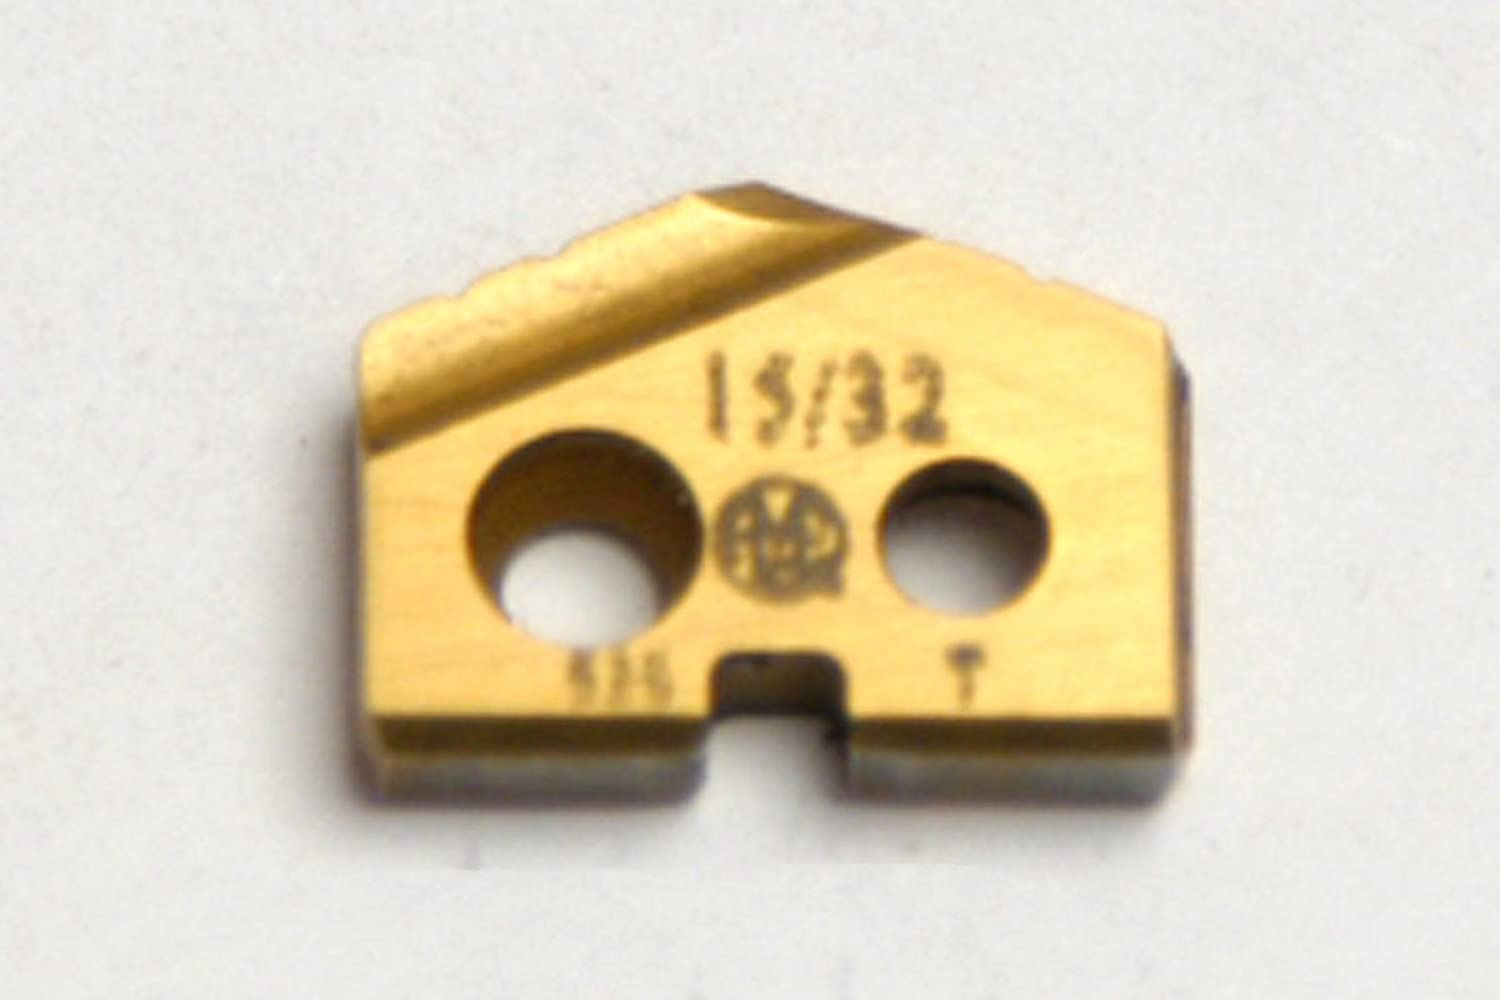 15 32 .4687 SPADE DRILL INSERT SERIES TA Free Shipping Cheap Bargain Max 62% OFF Gift Z TIN COATED